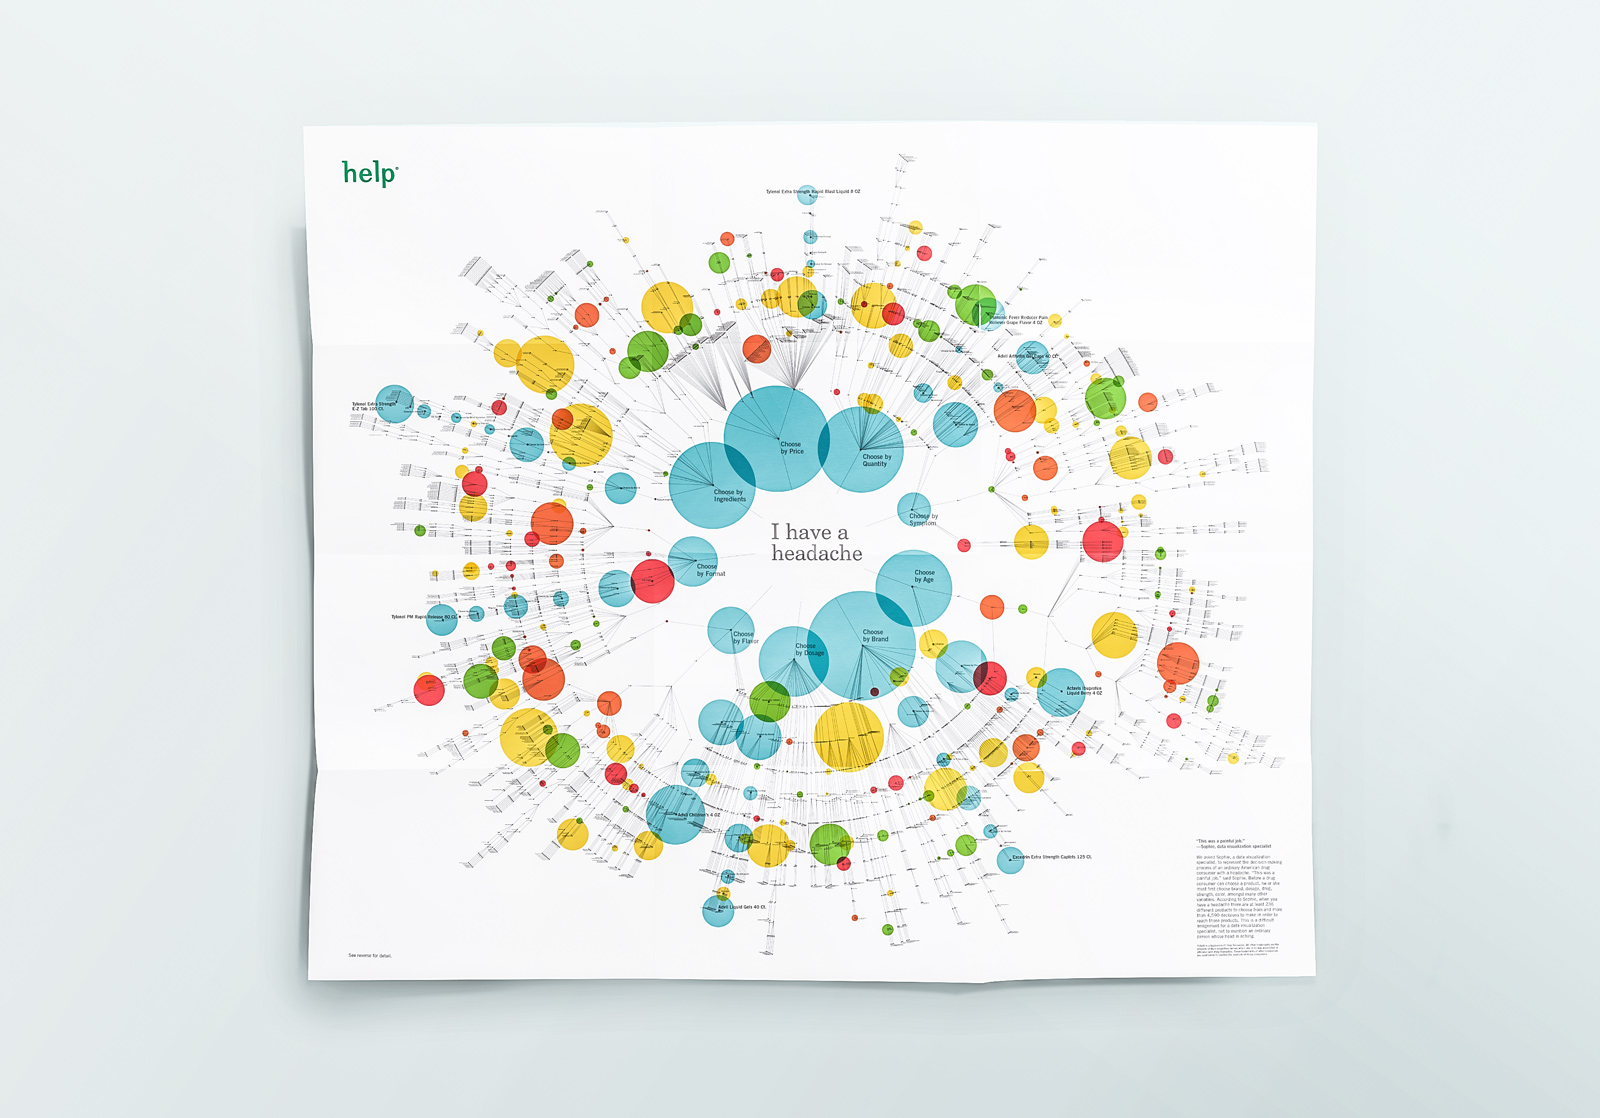 phillip fivel nessen help remedies dataviz poster design